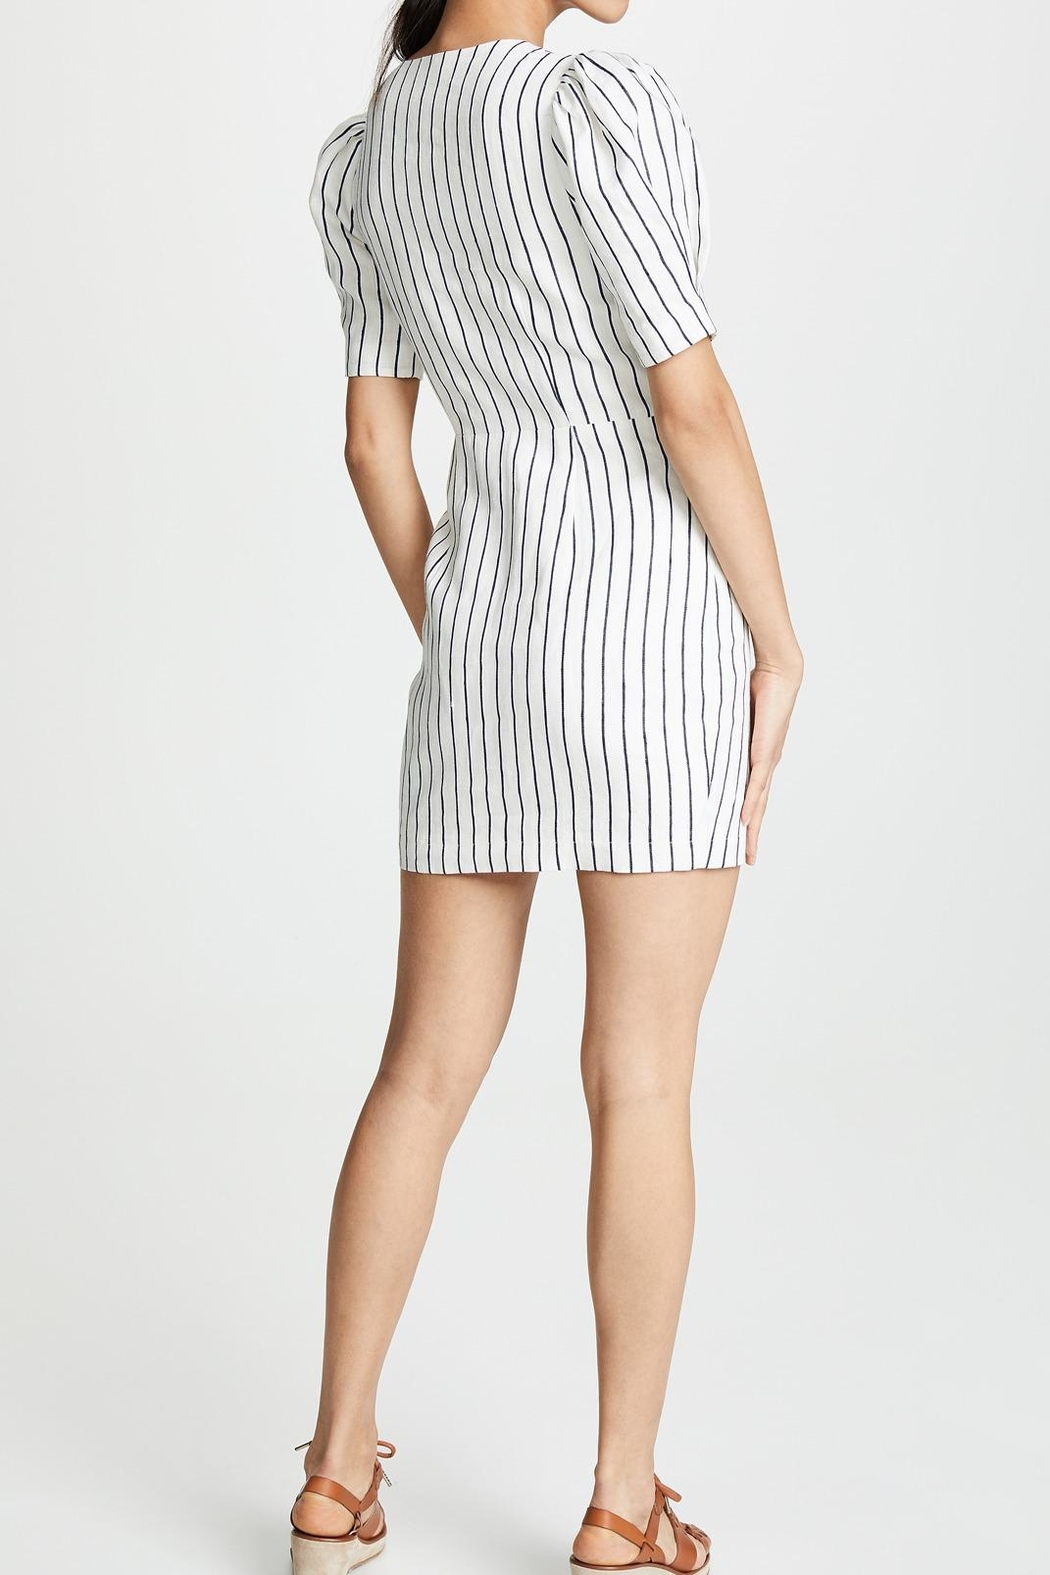 Saylor Pauline Striped Dress - Side Cropped Image